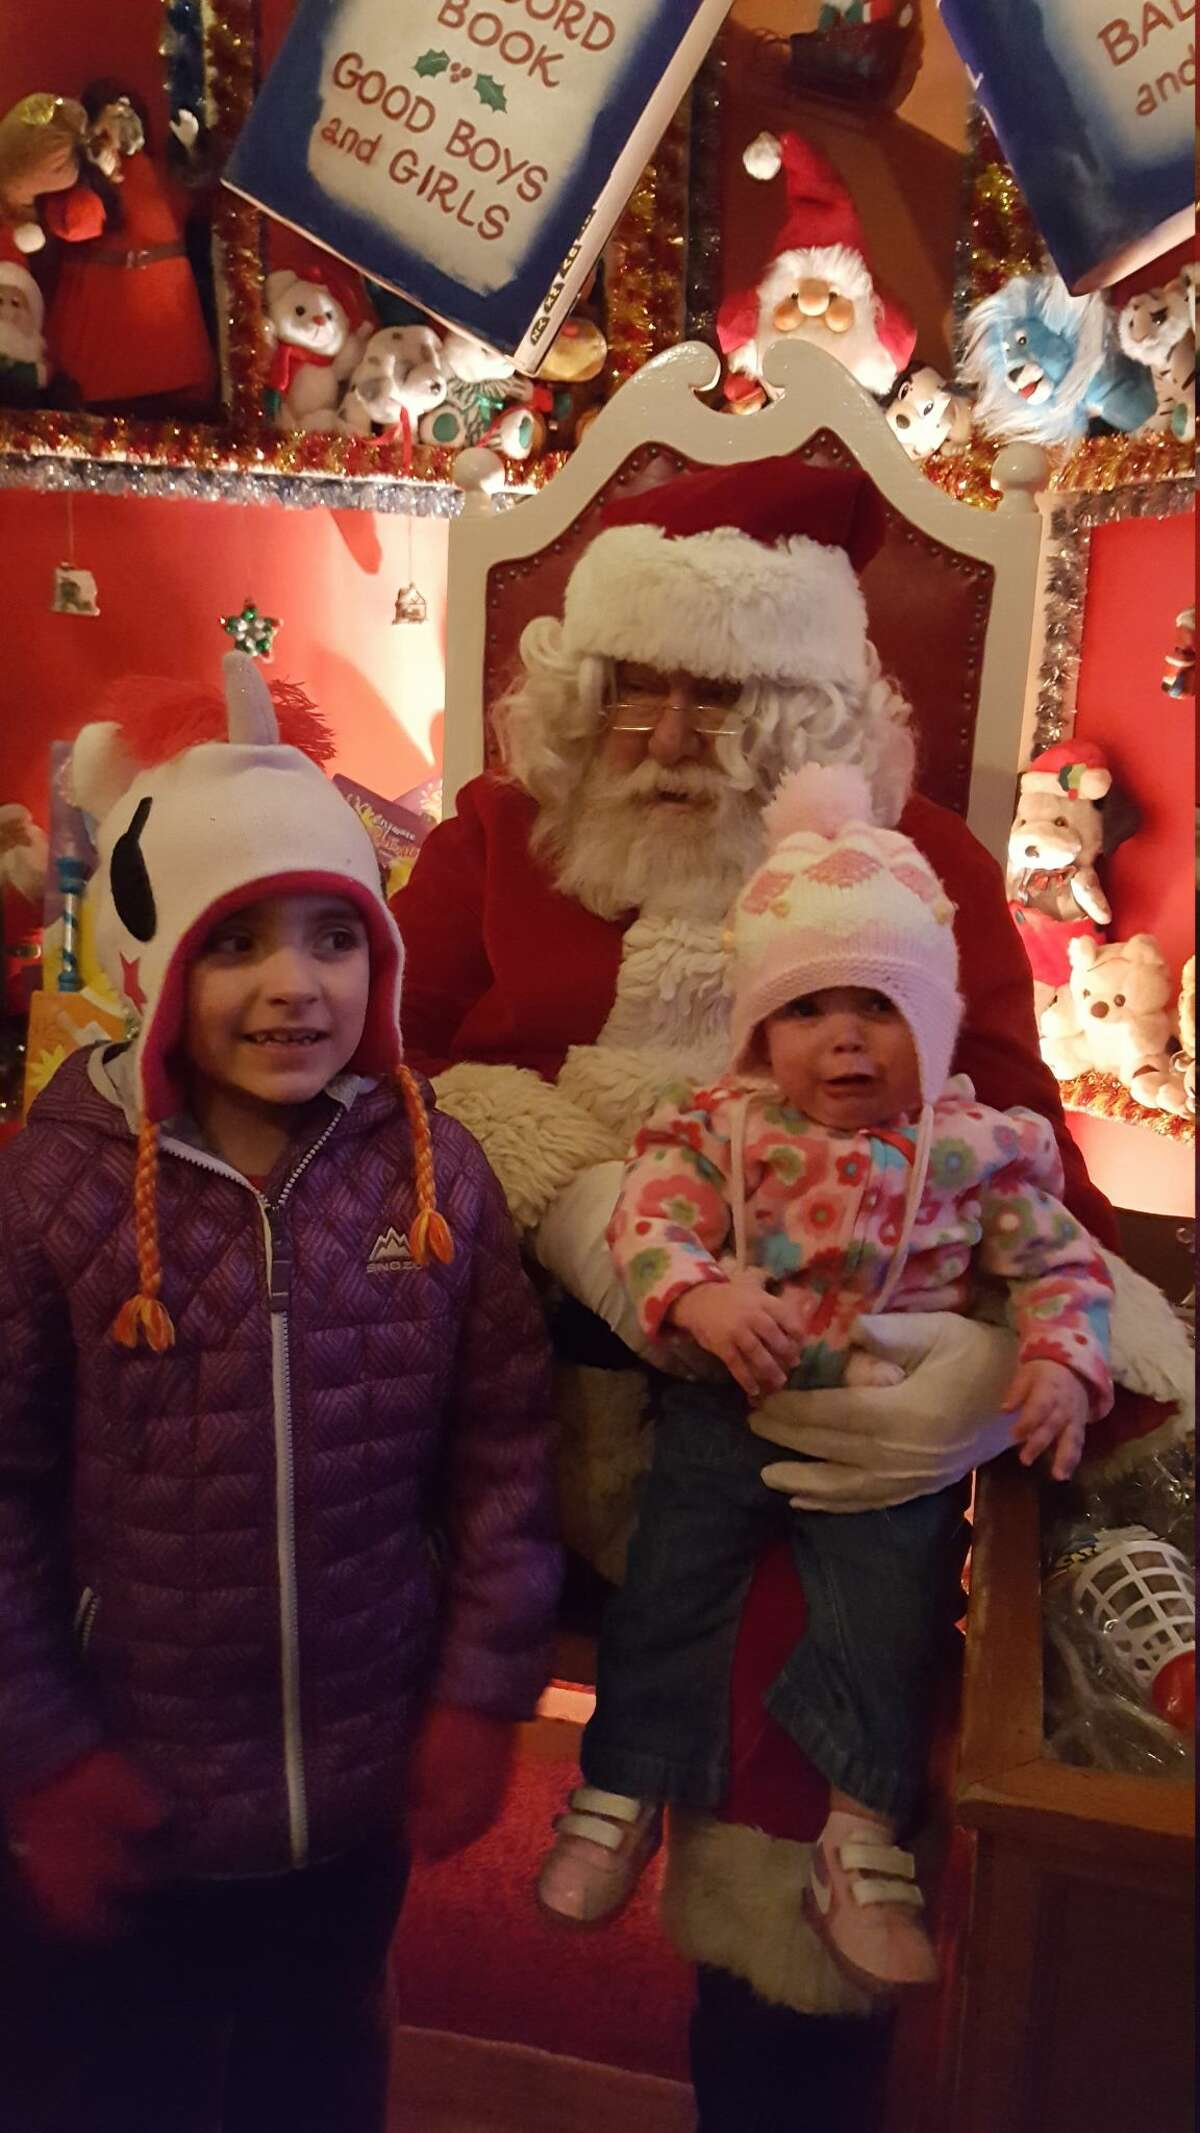 Alyssa (left) 6 years old, and Juliet (right) 9 months old from Newtown, Conn. meet with Santa Claus at Christmas Village in Torrington, Conn.